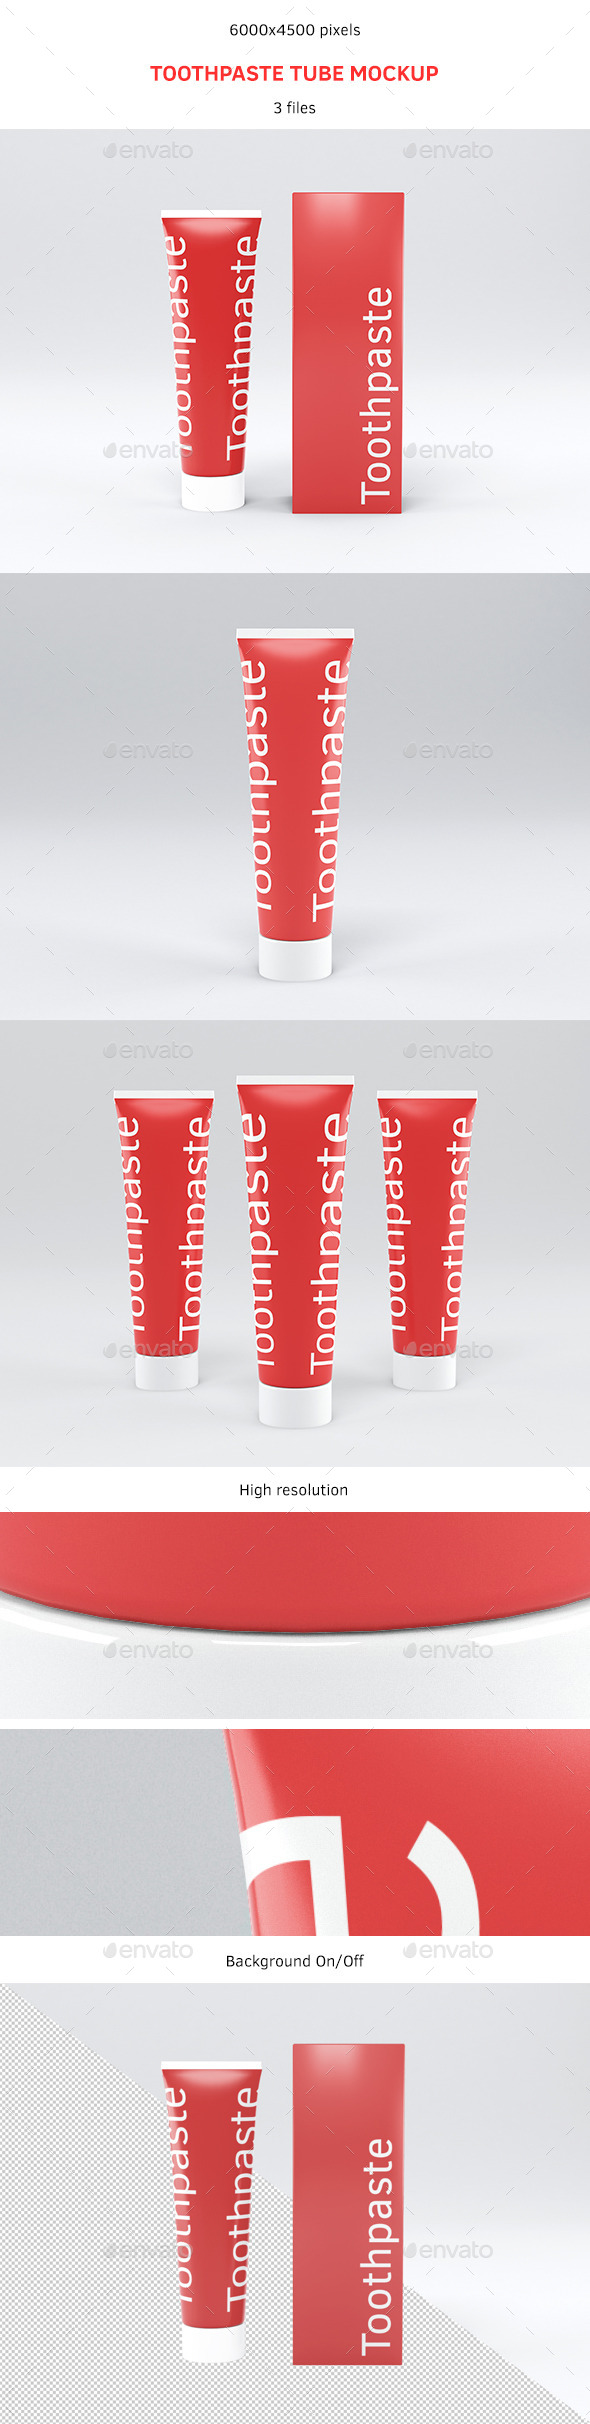 Toothpaste Tube Mockup - Miscellaneous Packaging